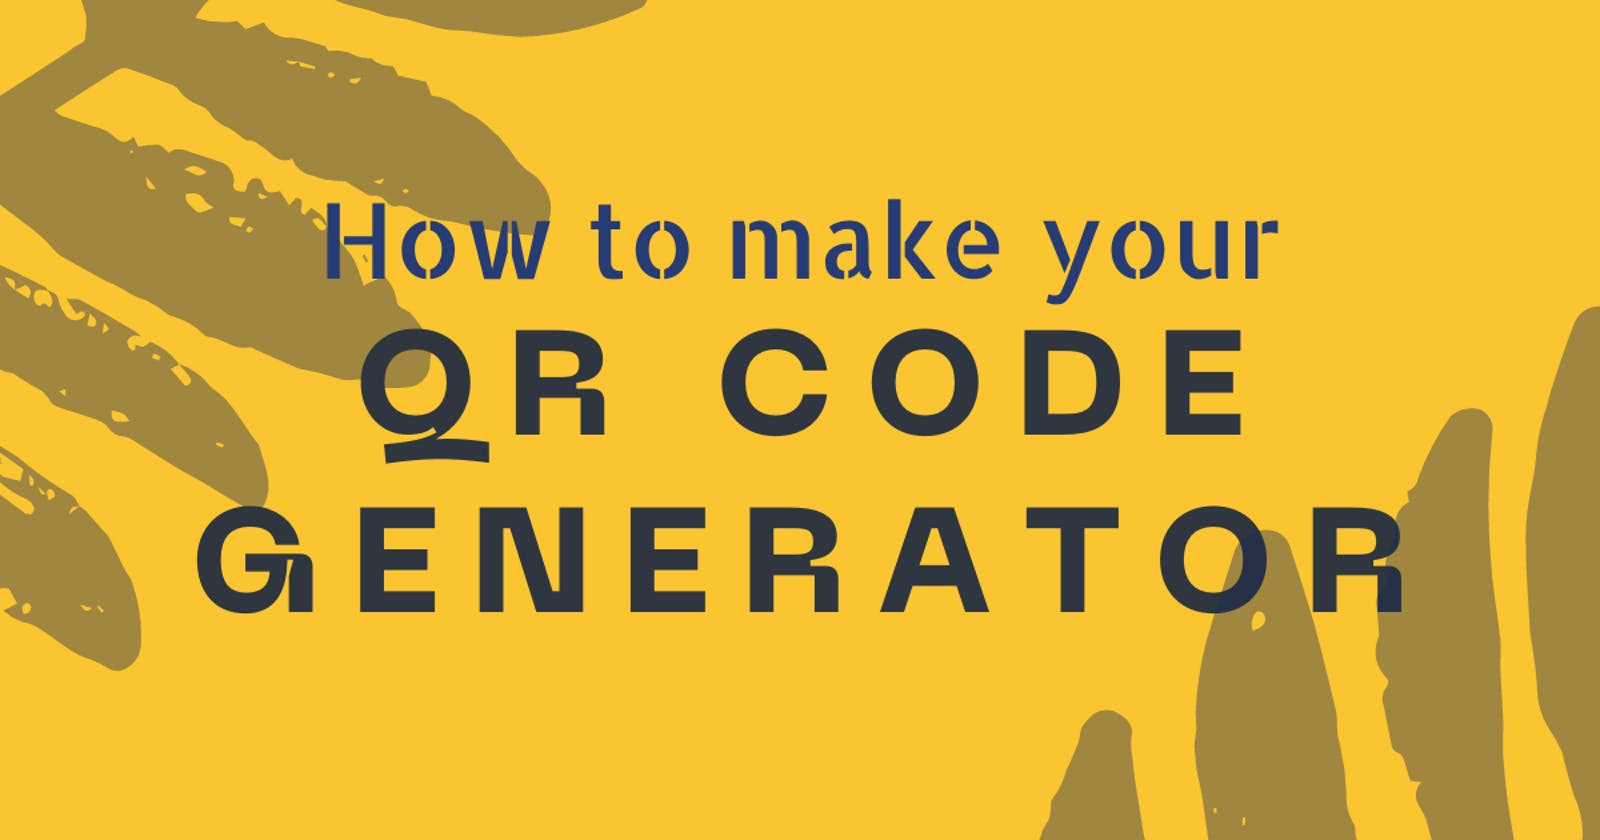 How to make your QR Code Generator using HTML, CSS & JavaScript